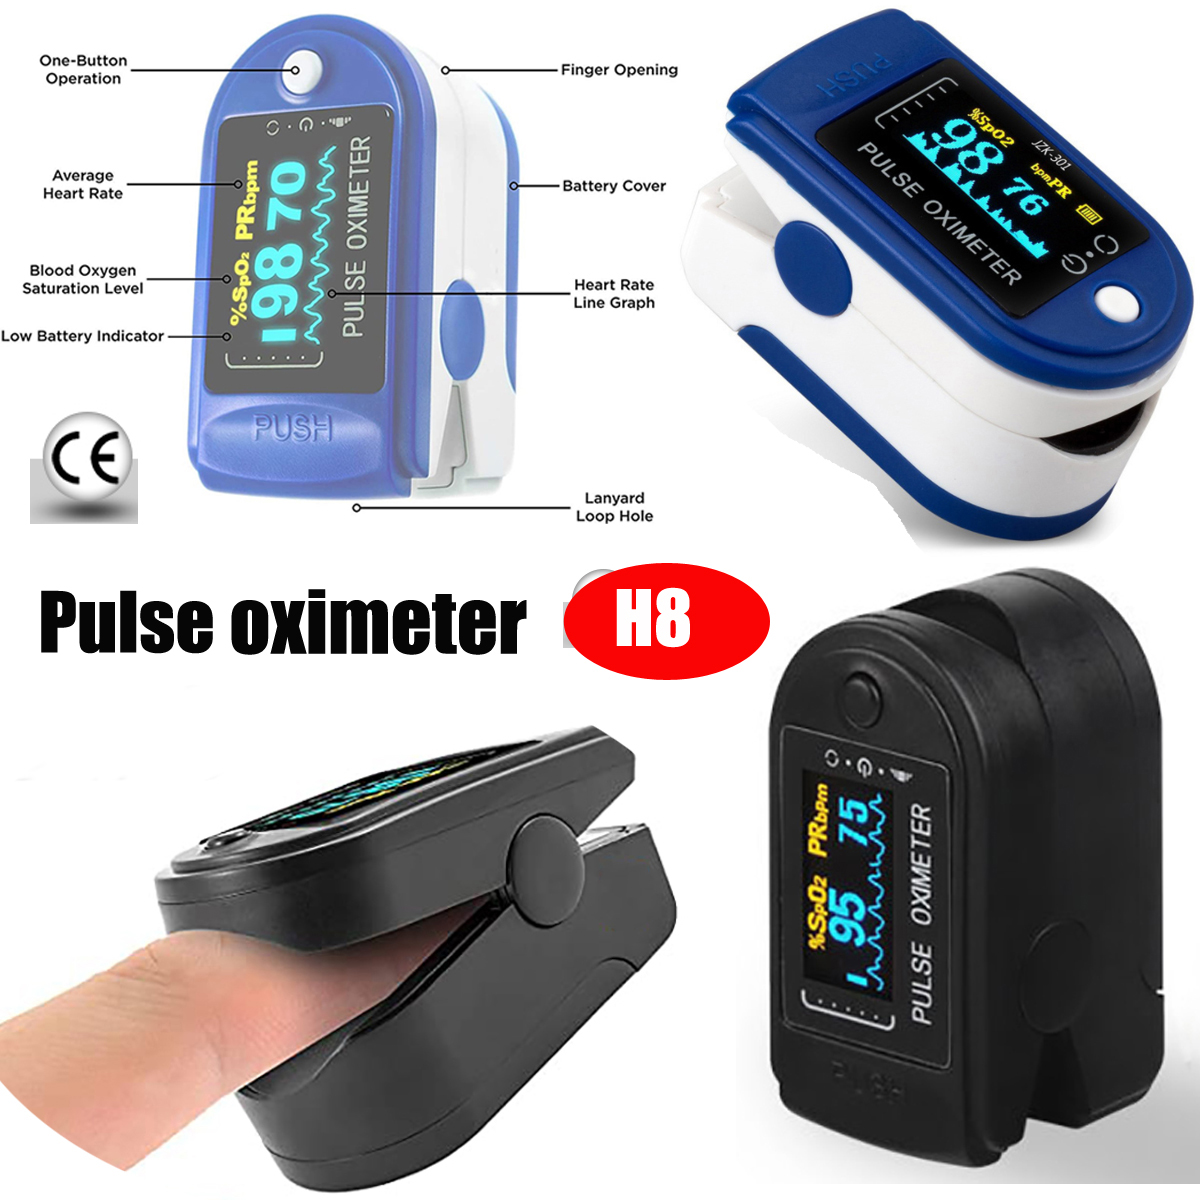 High-Quality Oximeter Digital SpO2 Fingertip Pulse Oximeter